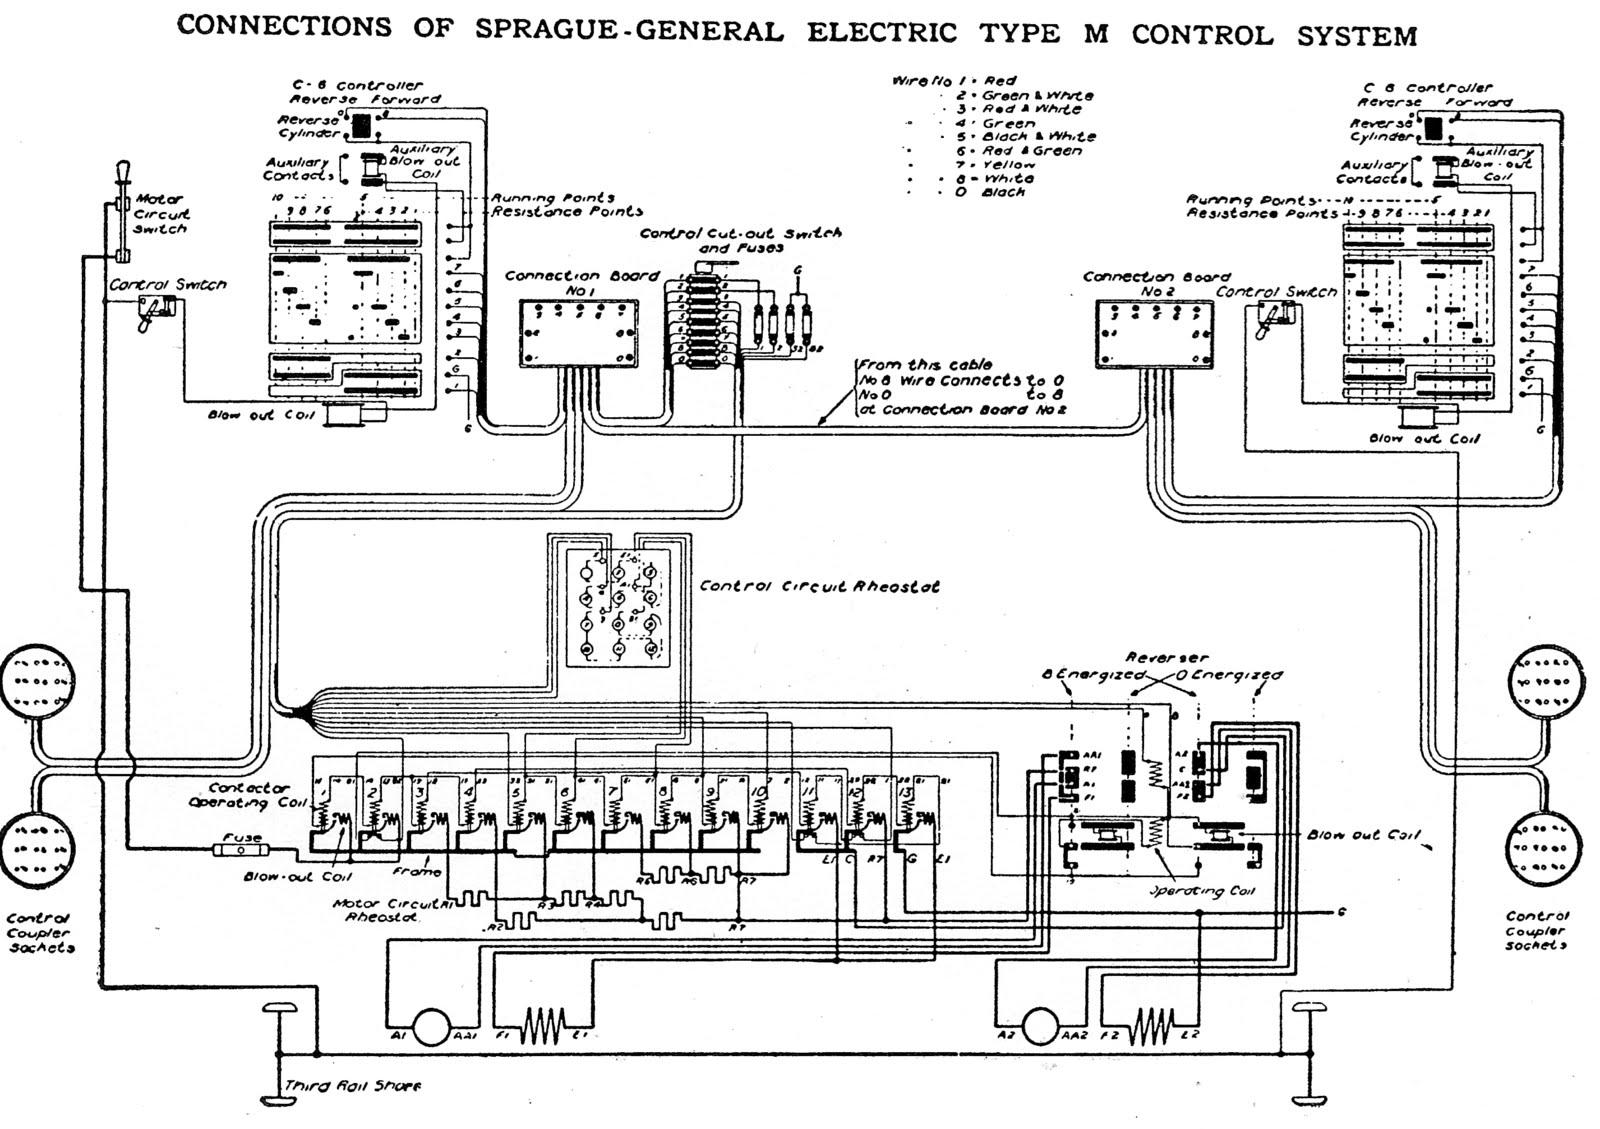 Control Wiring Basics Free Diagram For You Trailer Also C Er Battery Gm Engine Codes Image User Manual Of Dol Starter